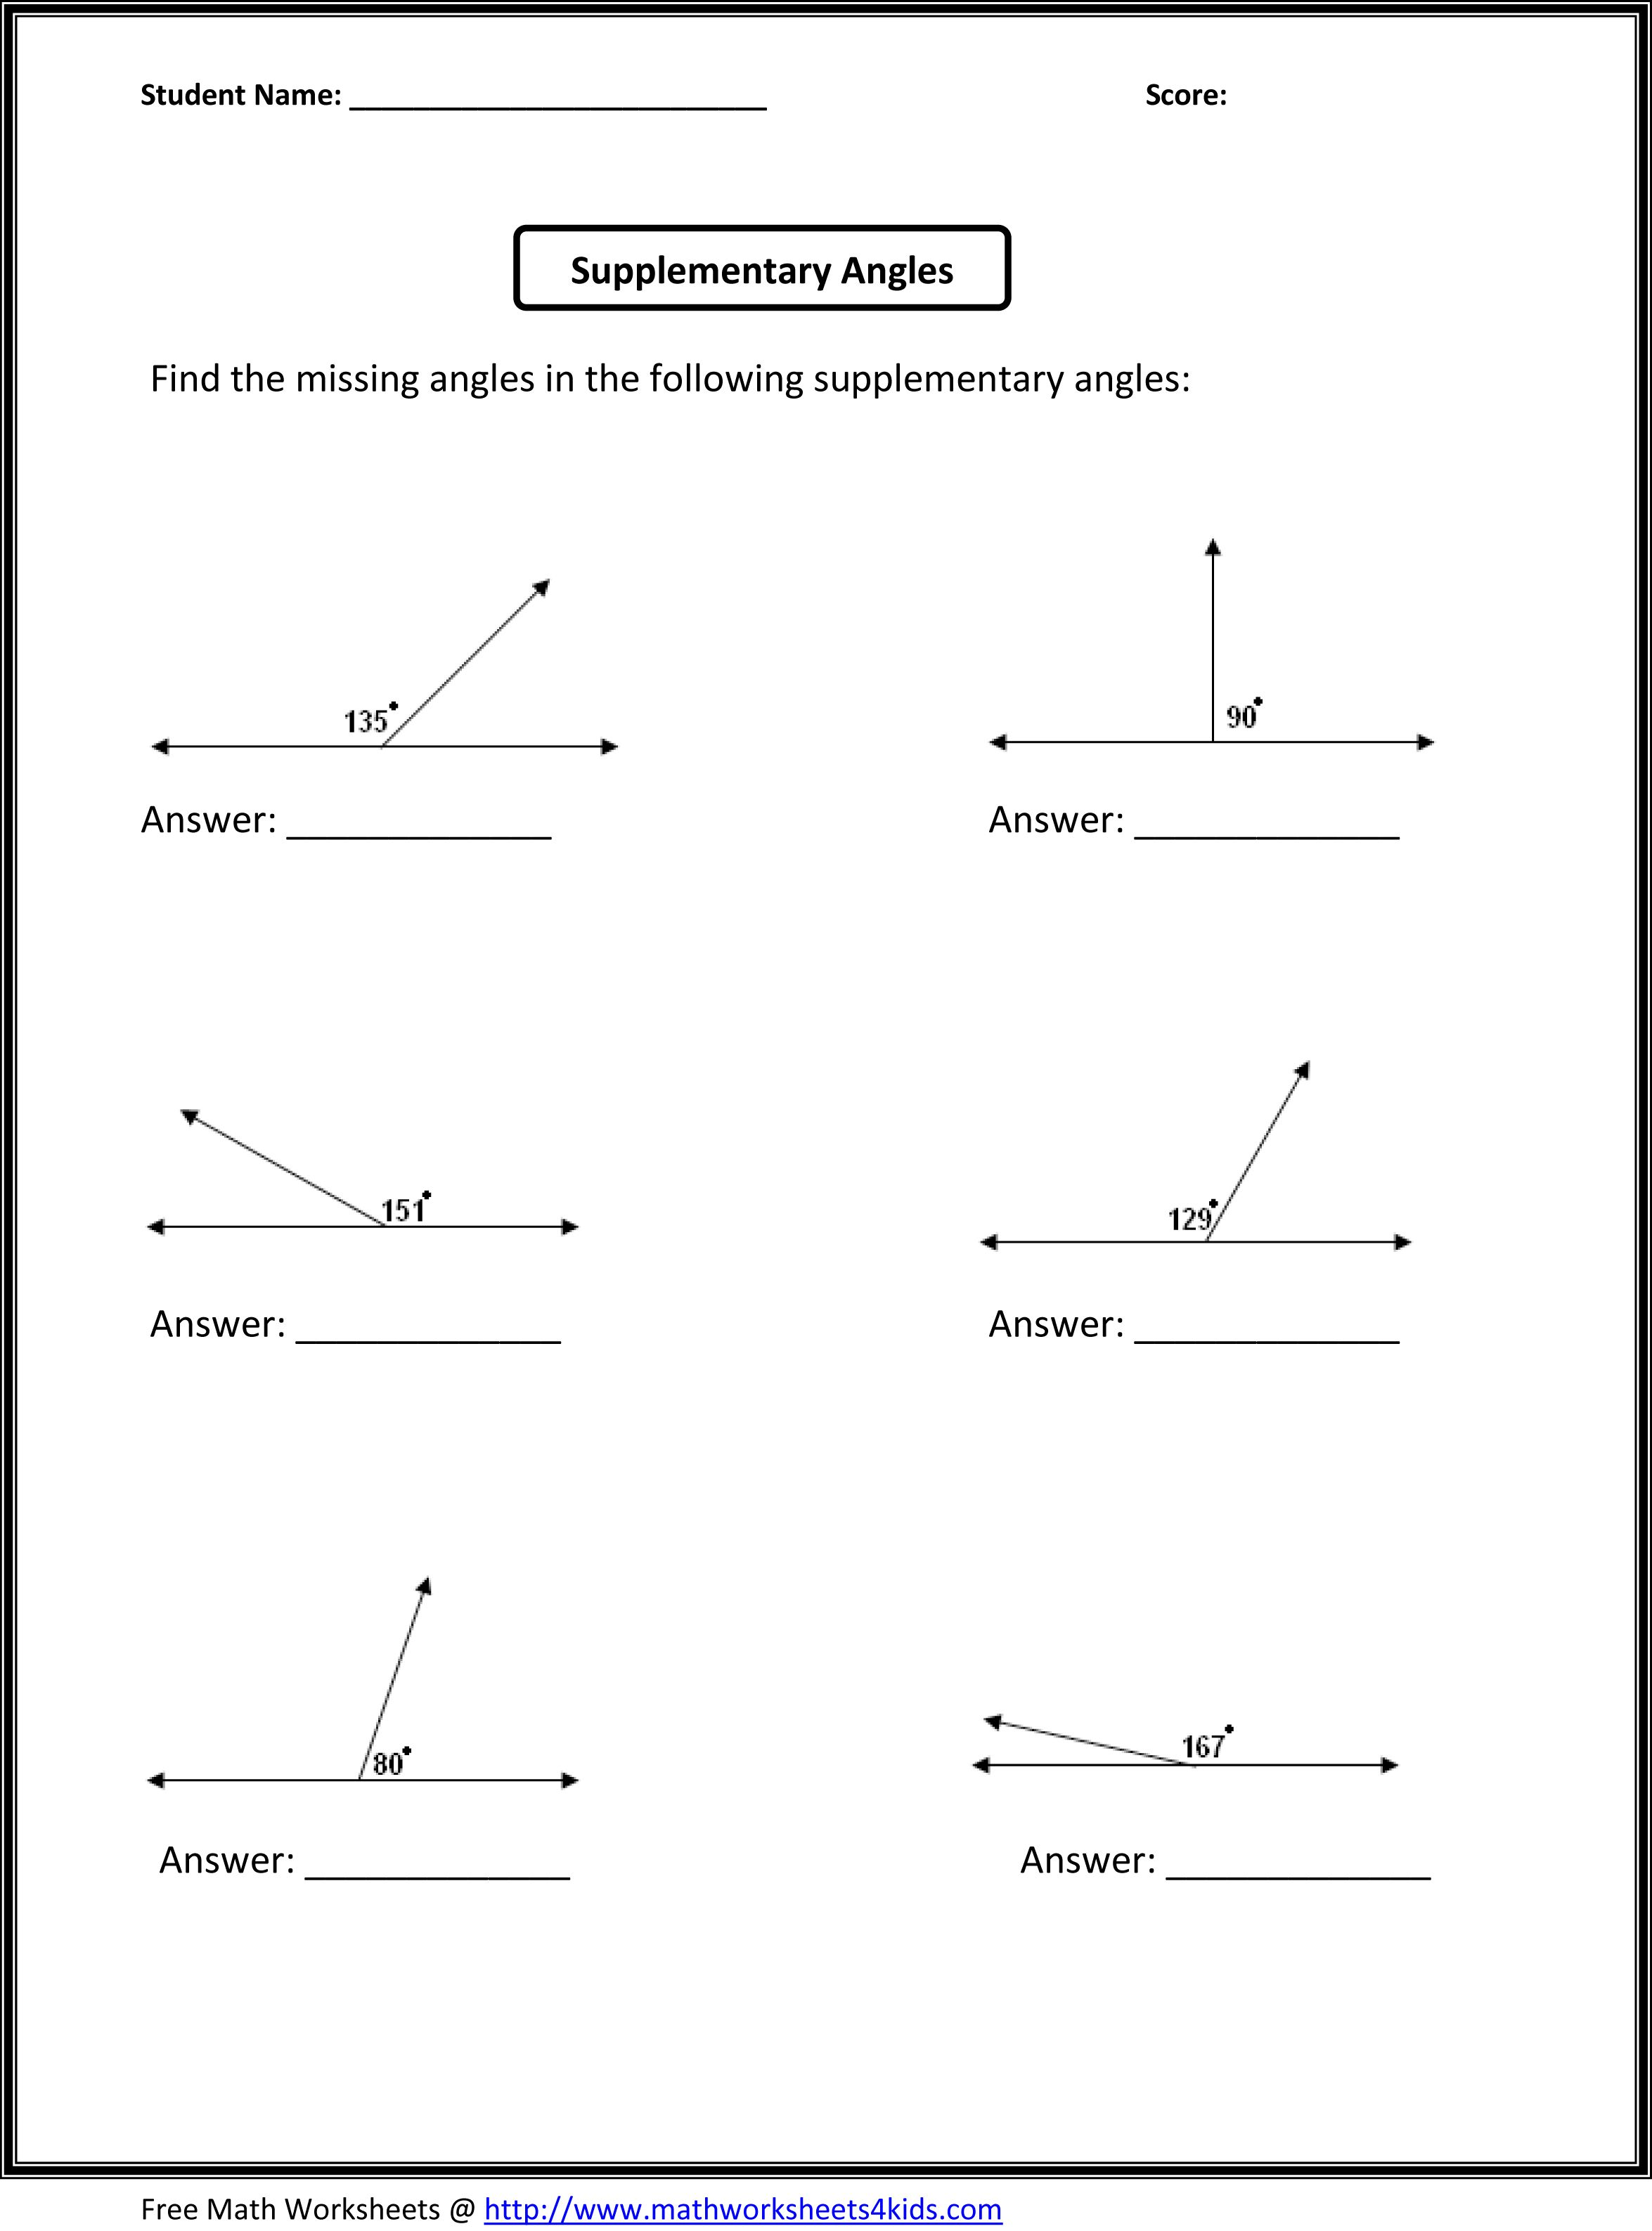 10 Best Printable Geometry Worksheets With Answers Images